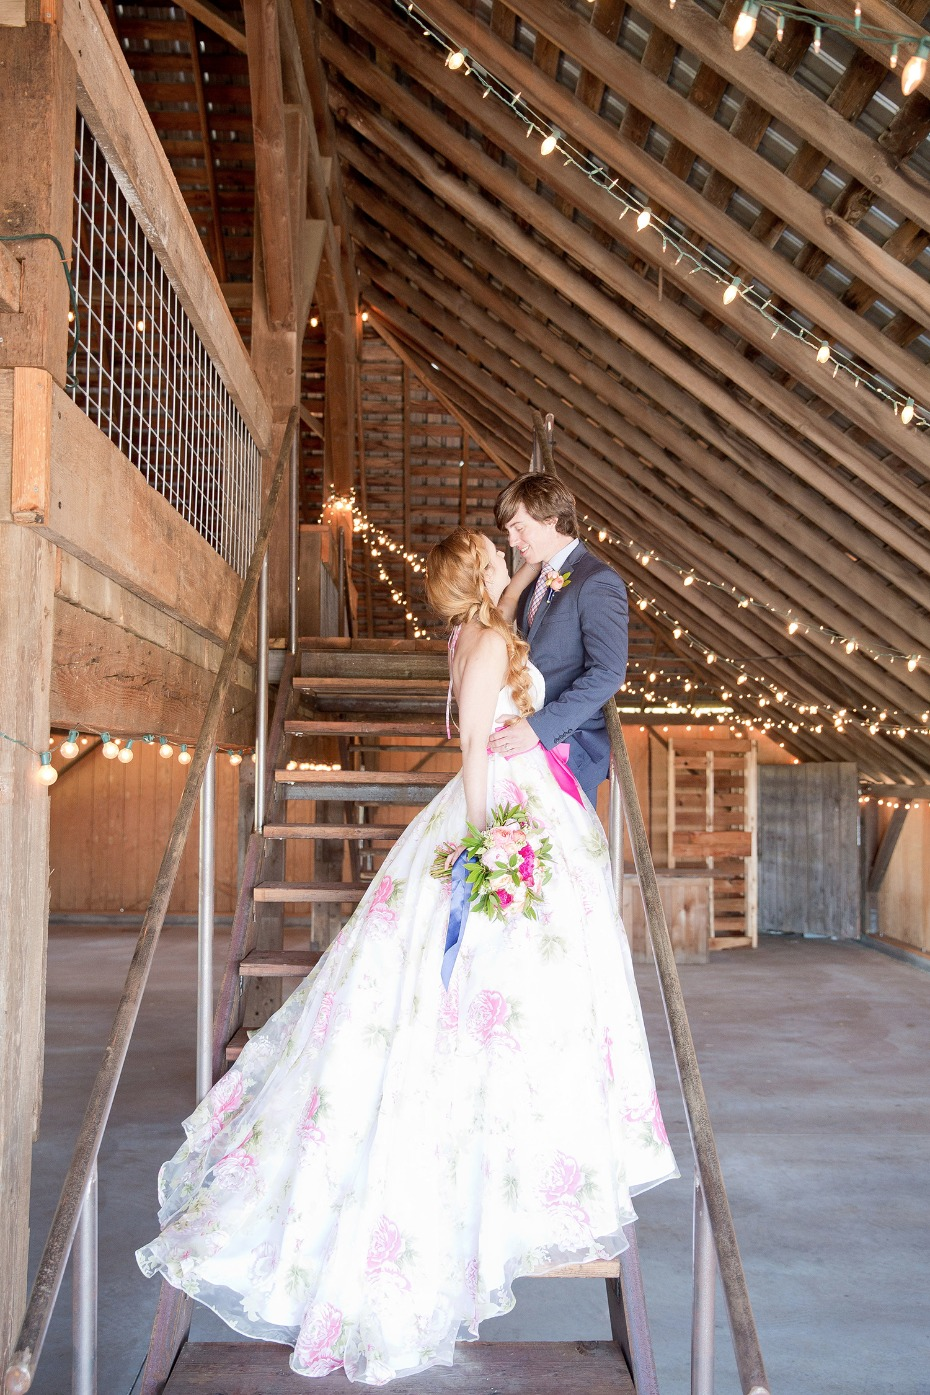 Floral wedding dress with pink bow